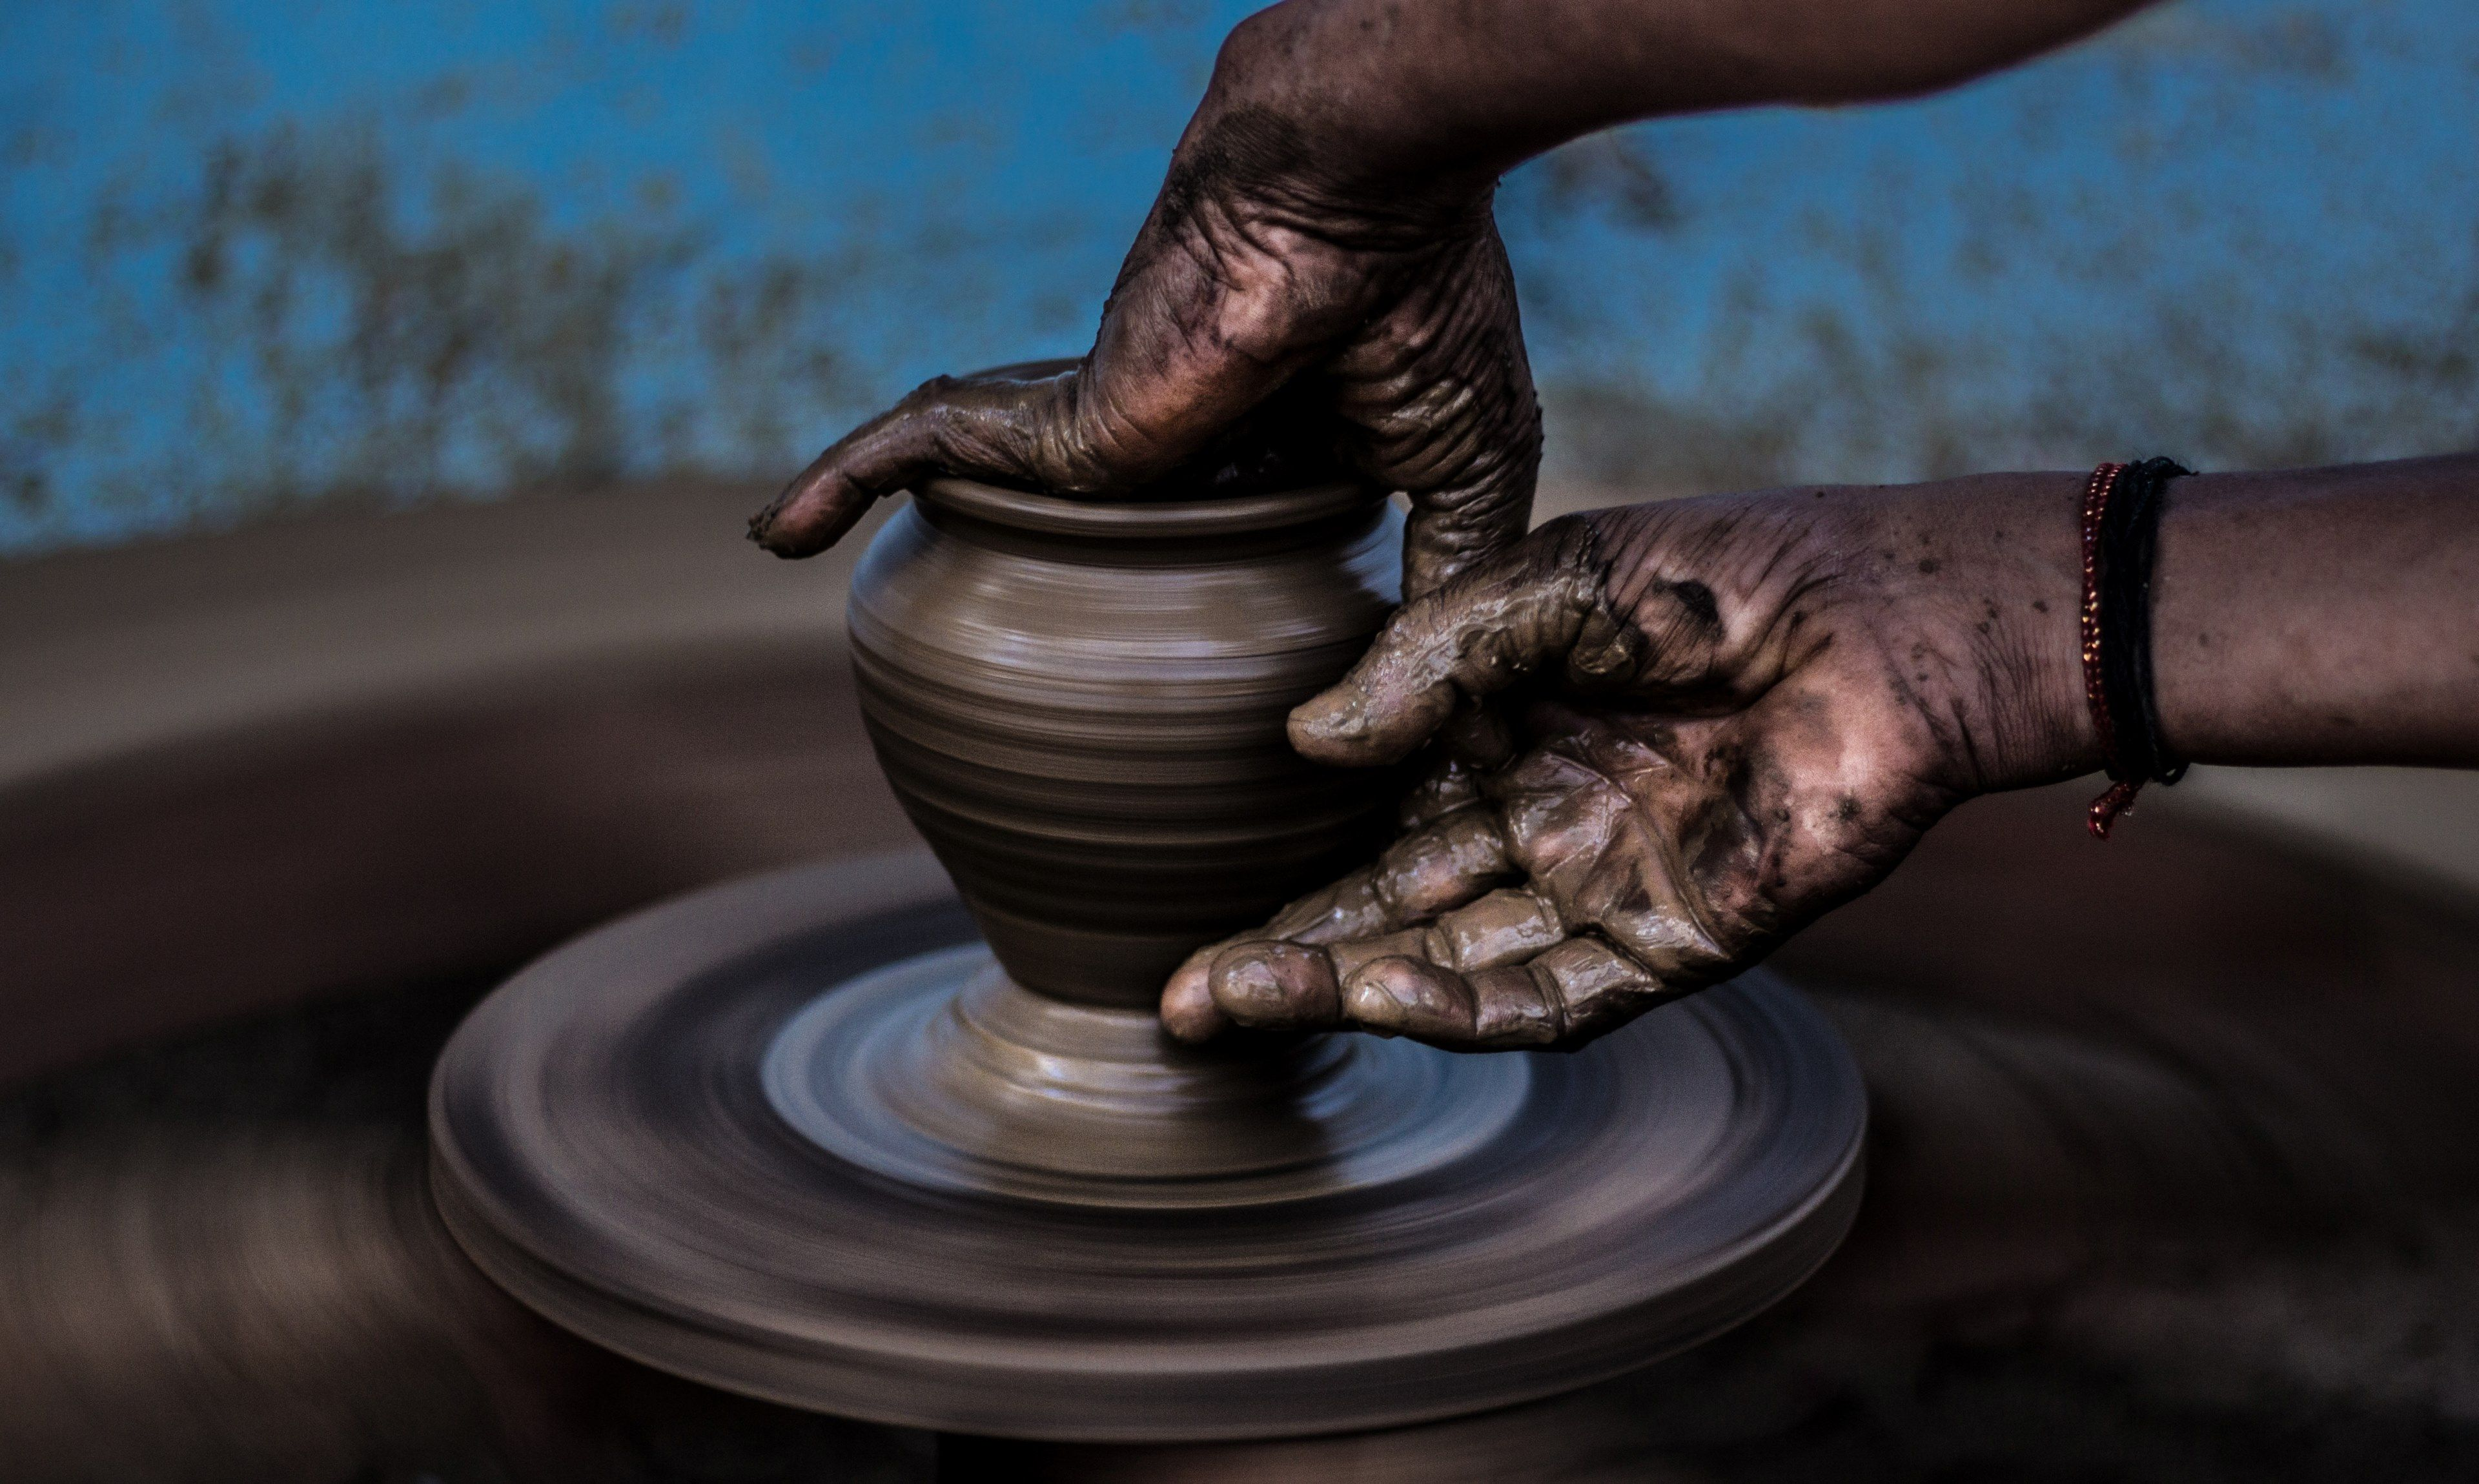 3840x2299 hands create art on a pottery wheelmud games 4k wallpaper and background